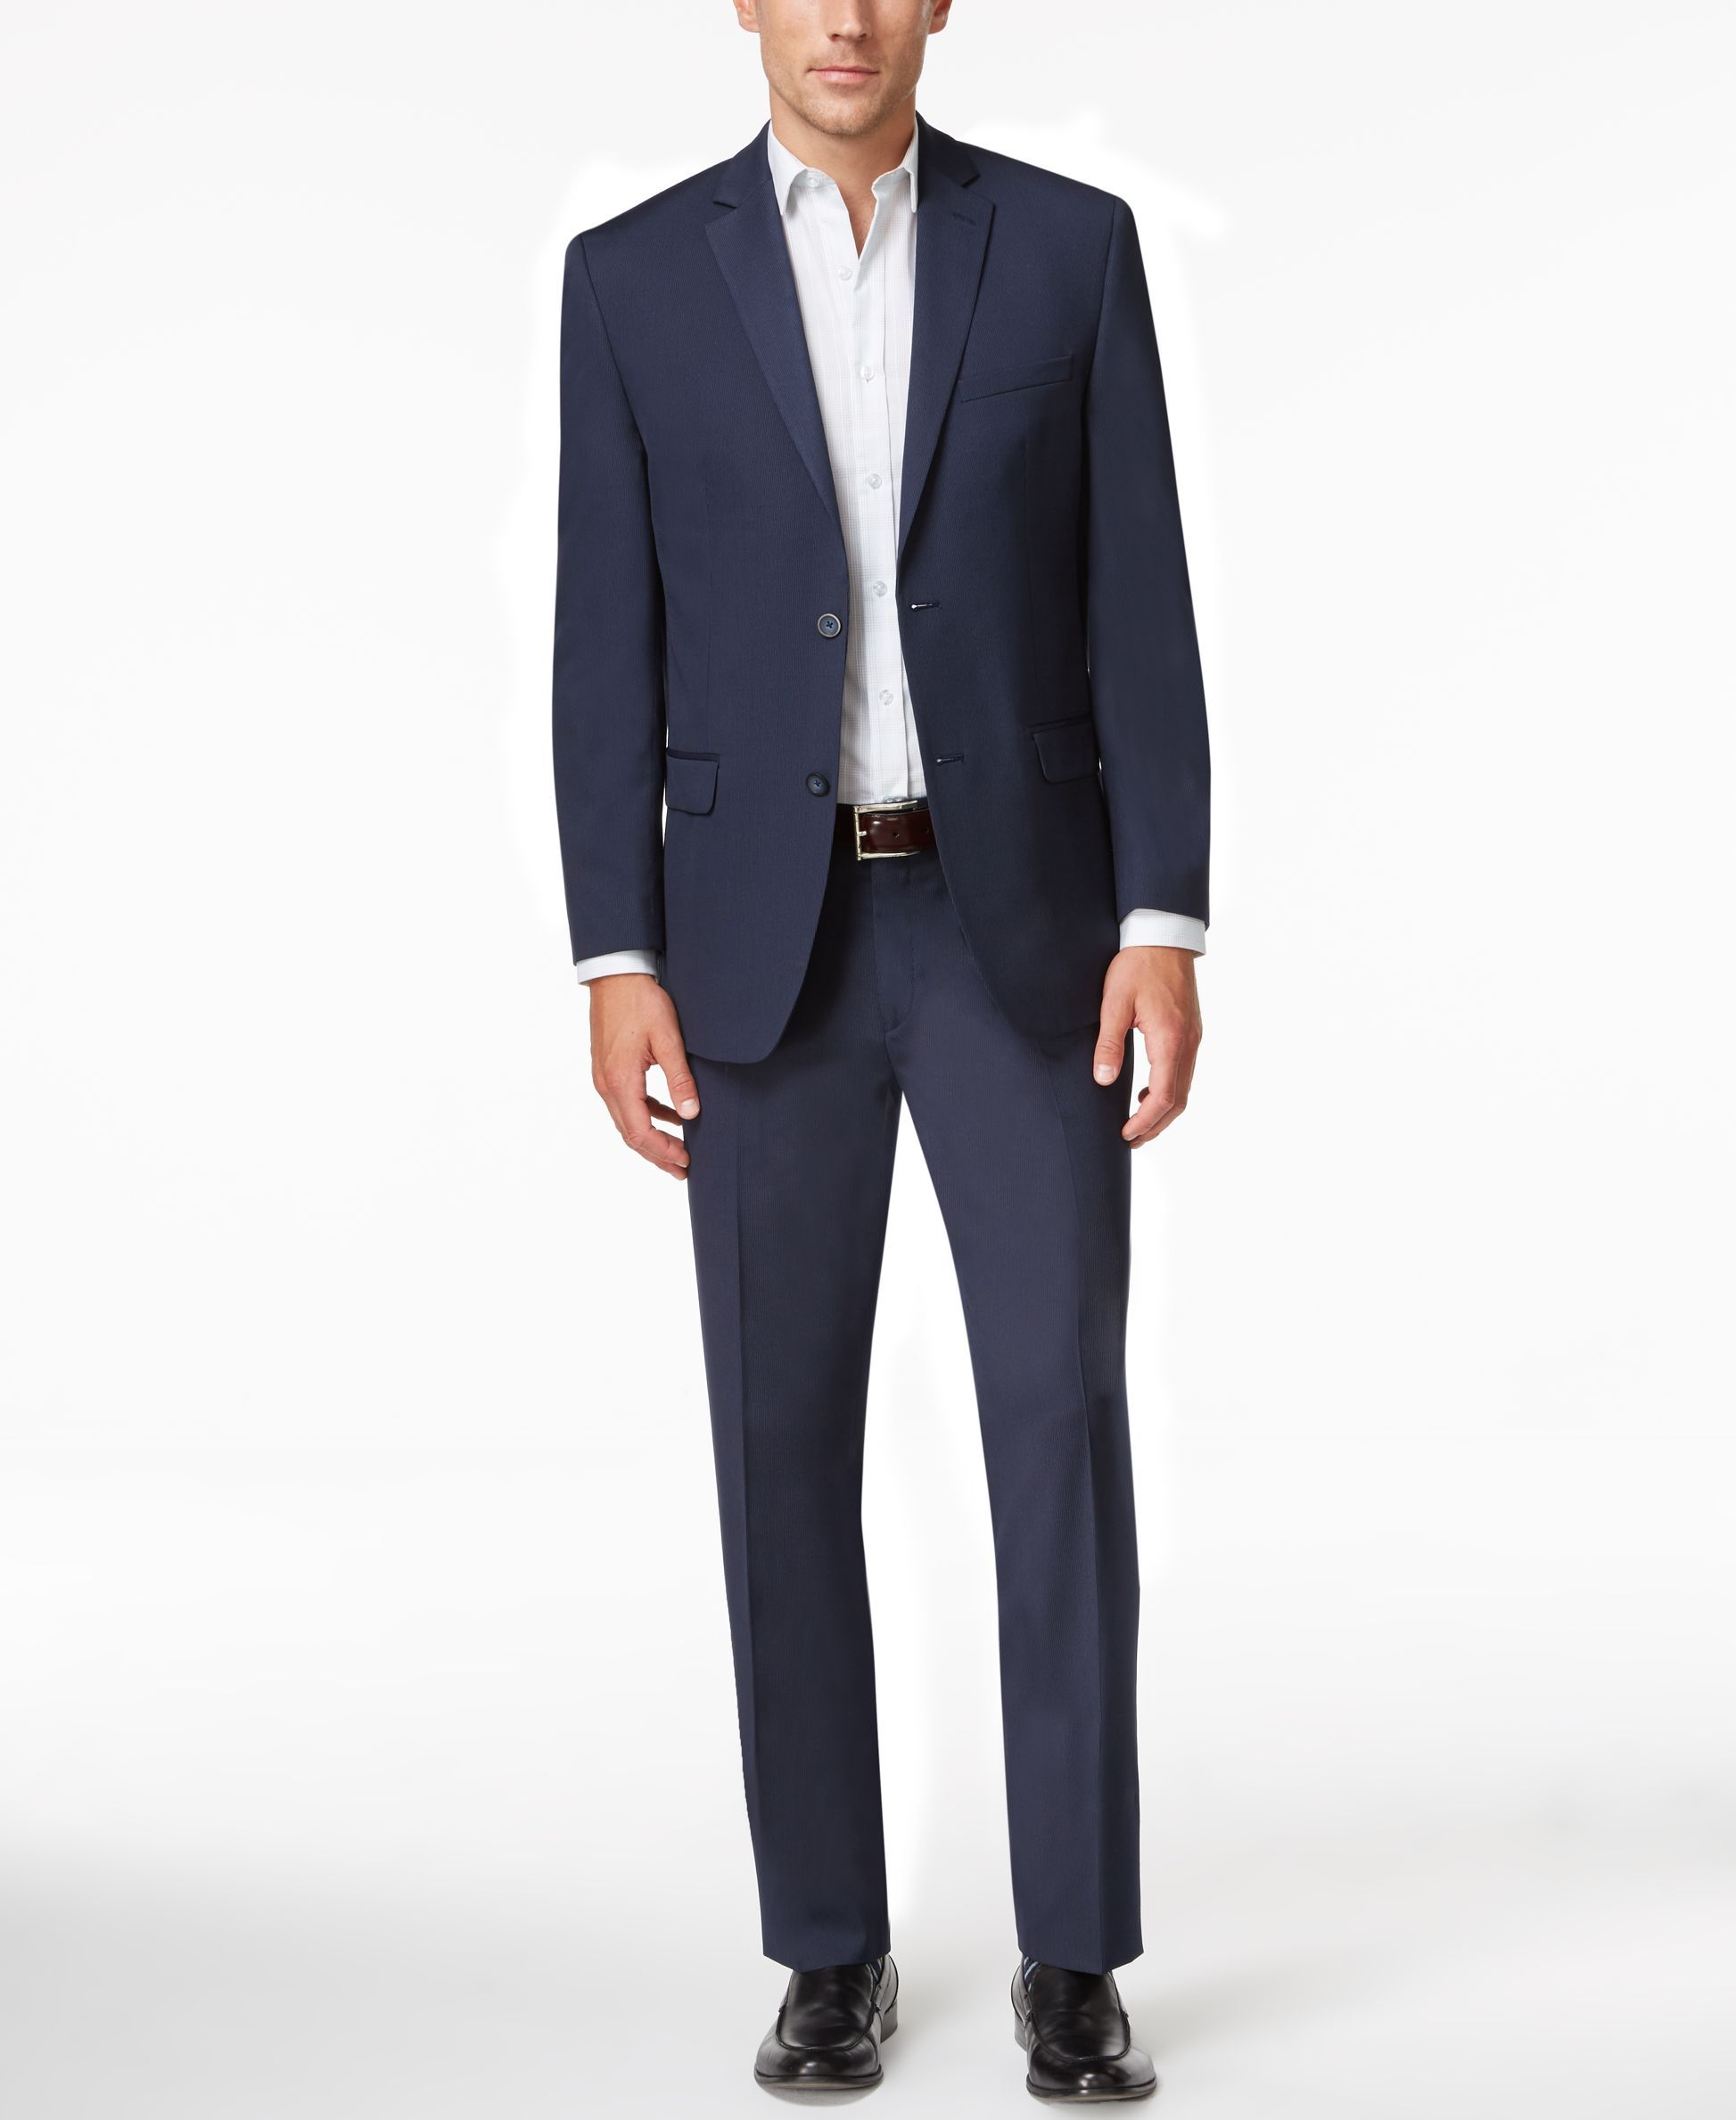 Navy blue dress shoes for wedding  Marc New York by Andrew Marc Menus SlimFit Navy MiniStripe Suit